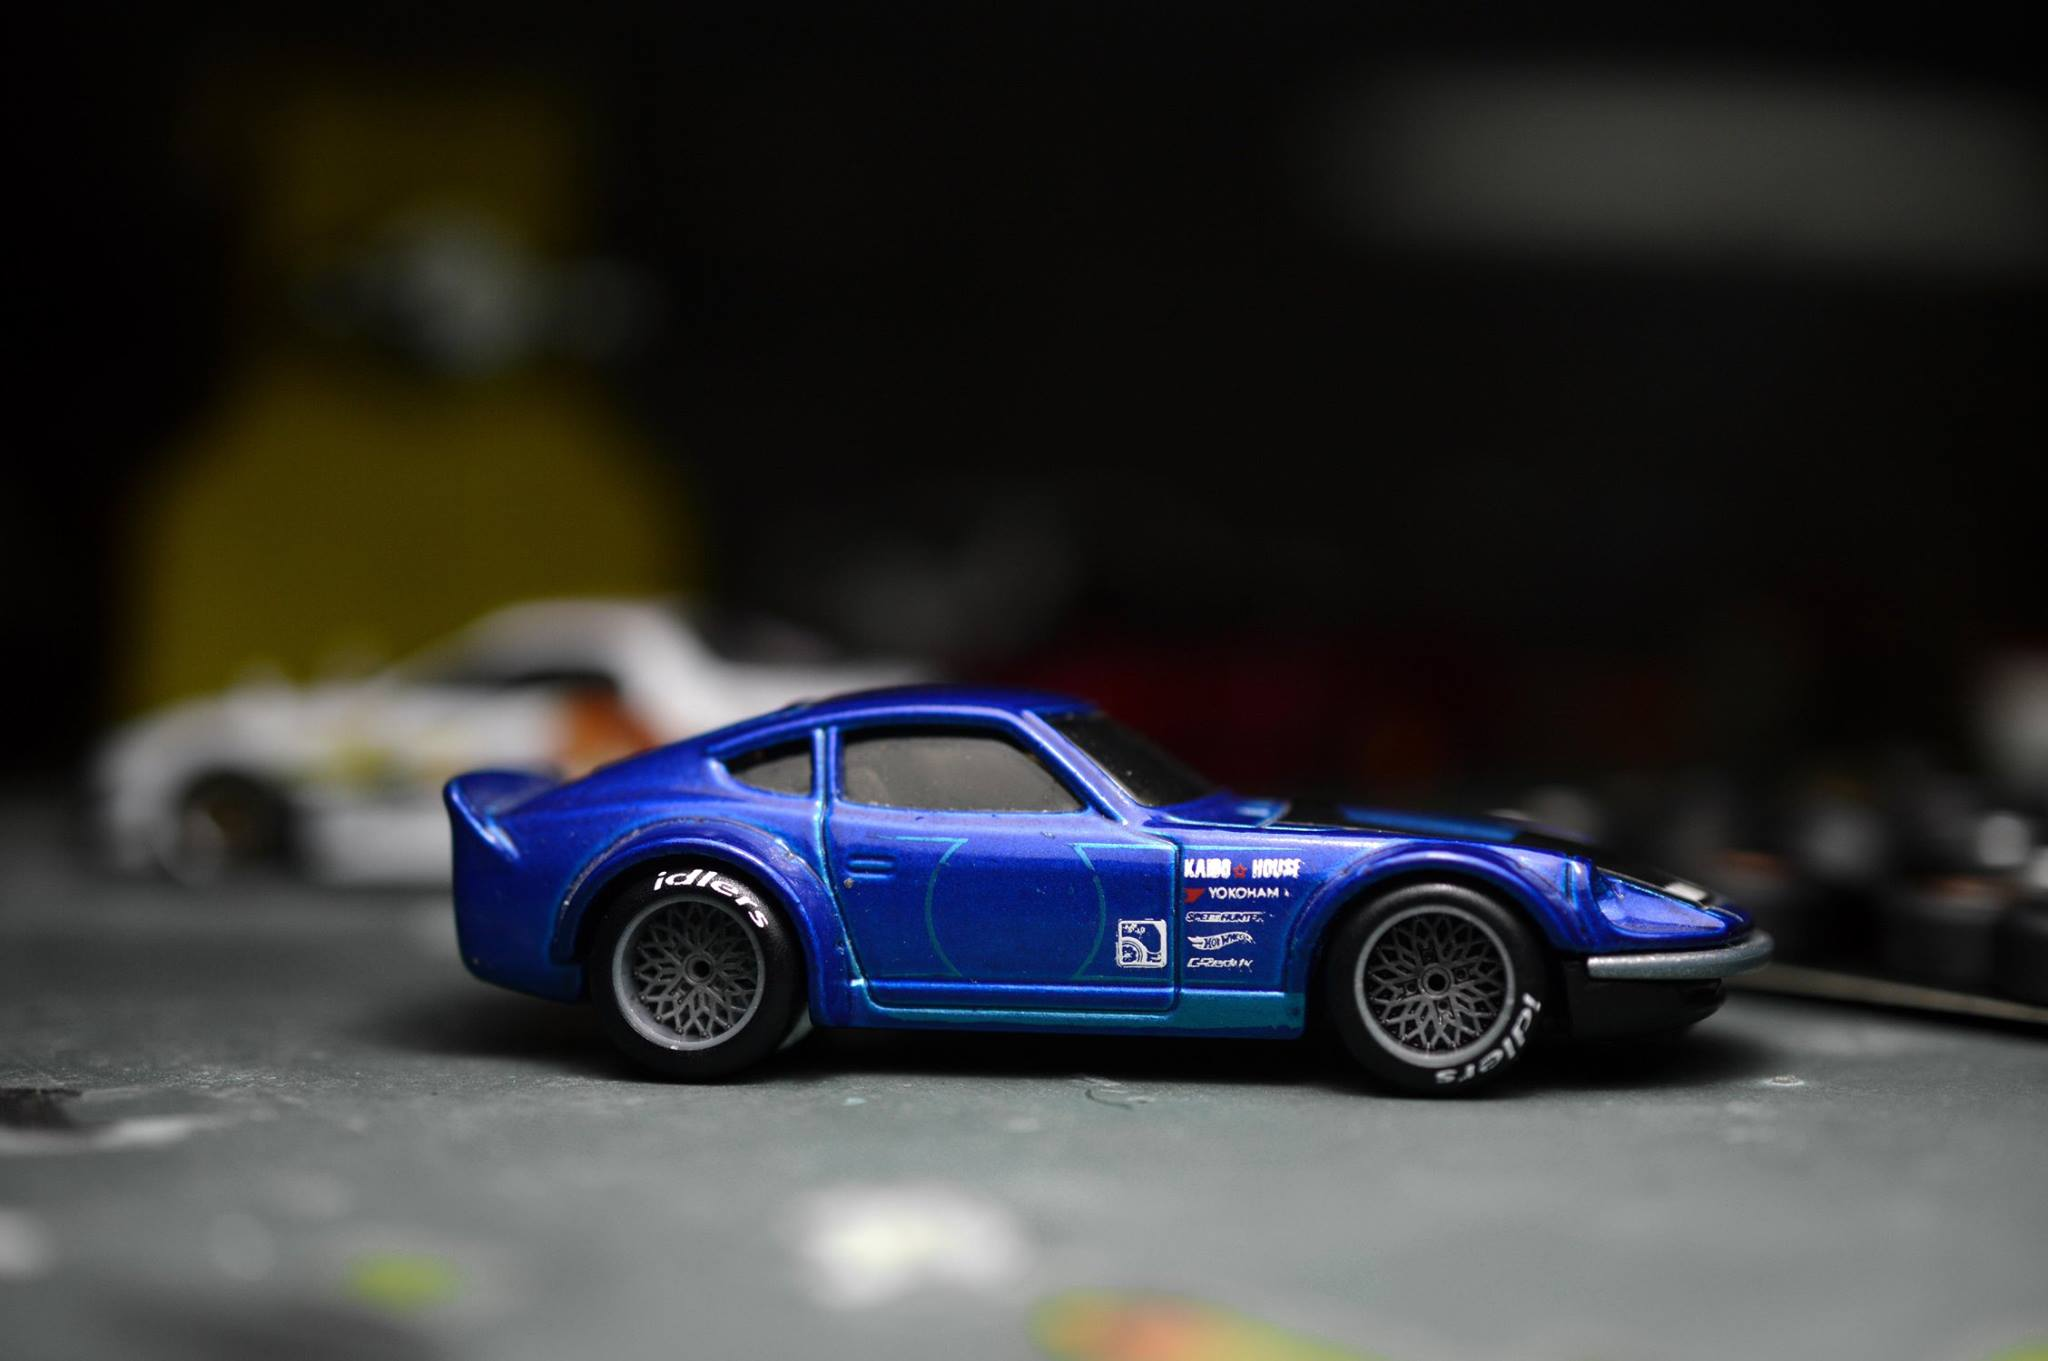 KREAuto Custom Wheels for 1:64 scale Hotwheels and diecast cars